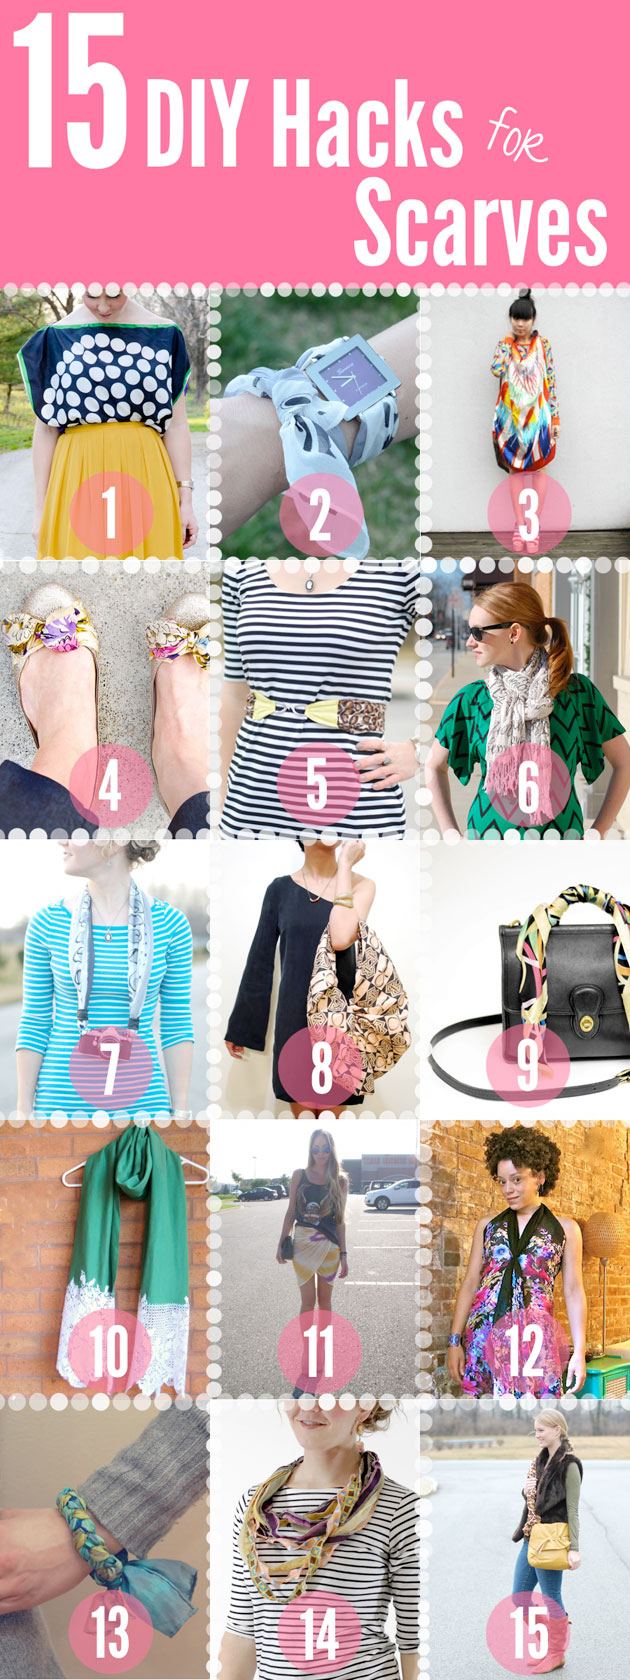 15 DIY Hacks for Scarves